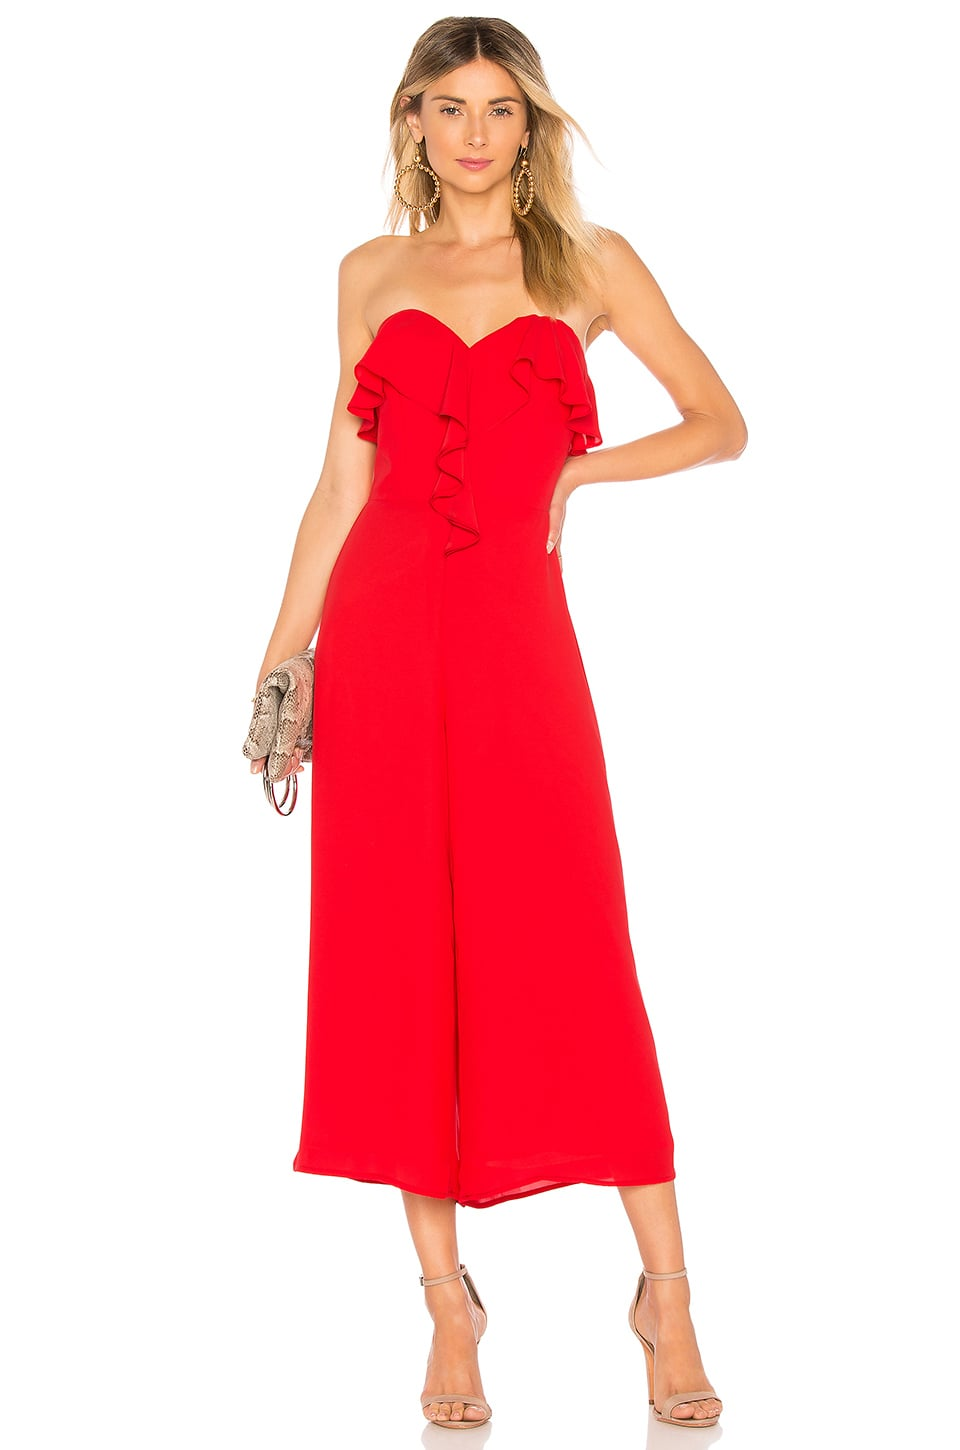 094c49c61c22 Red jumpsuit that can be worn to an event such as a wedding or holiday party.  Never been worn. Retails for approx.  310.00 CAD.